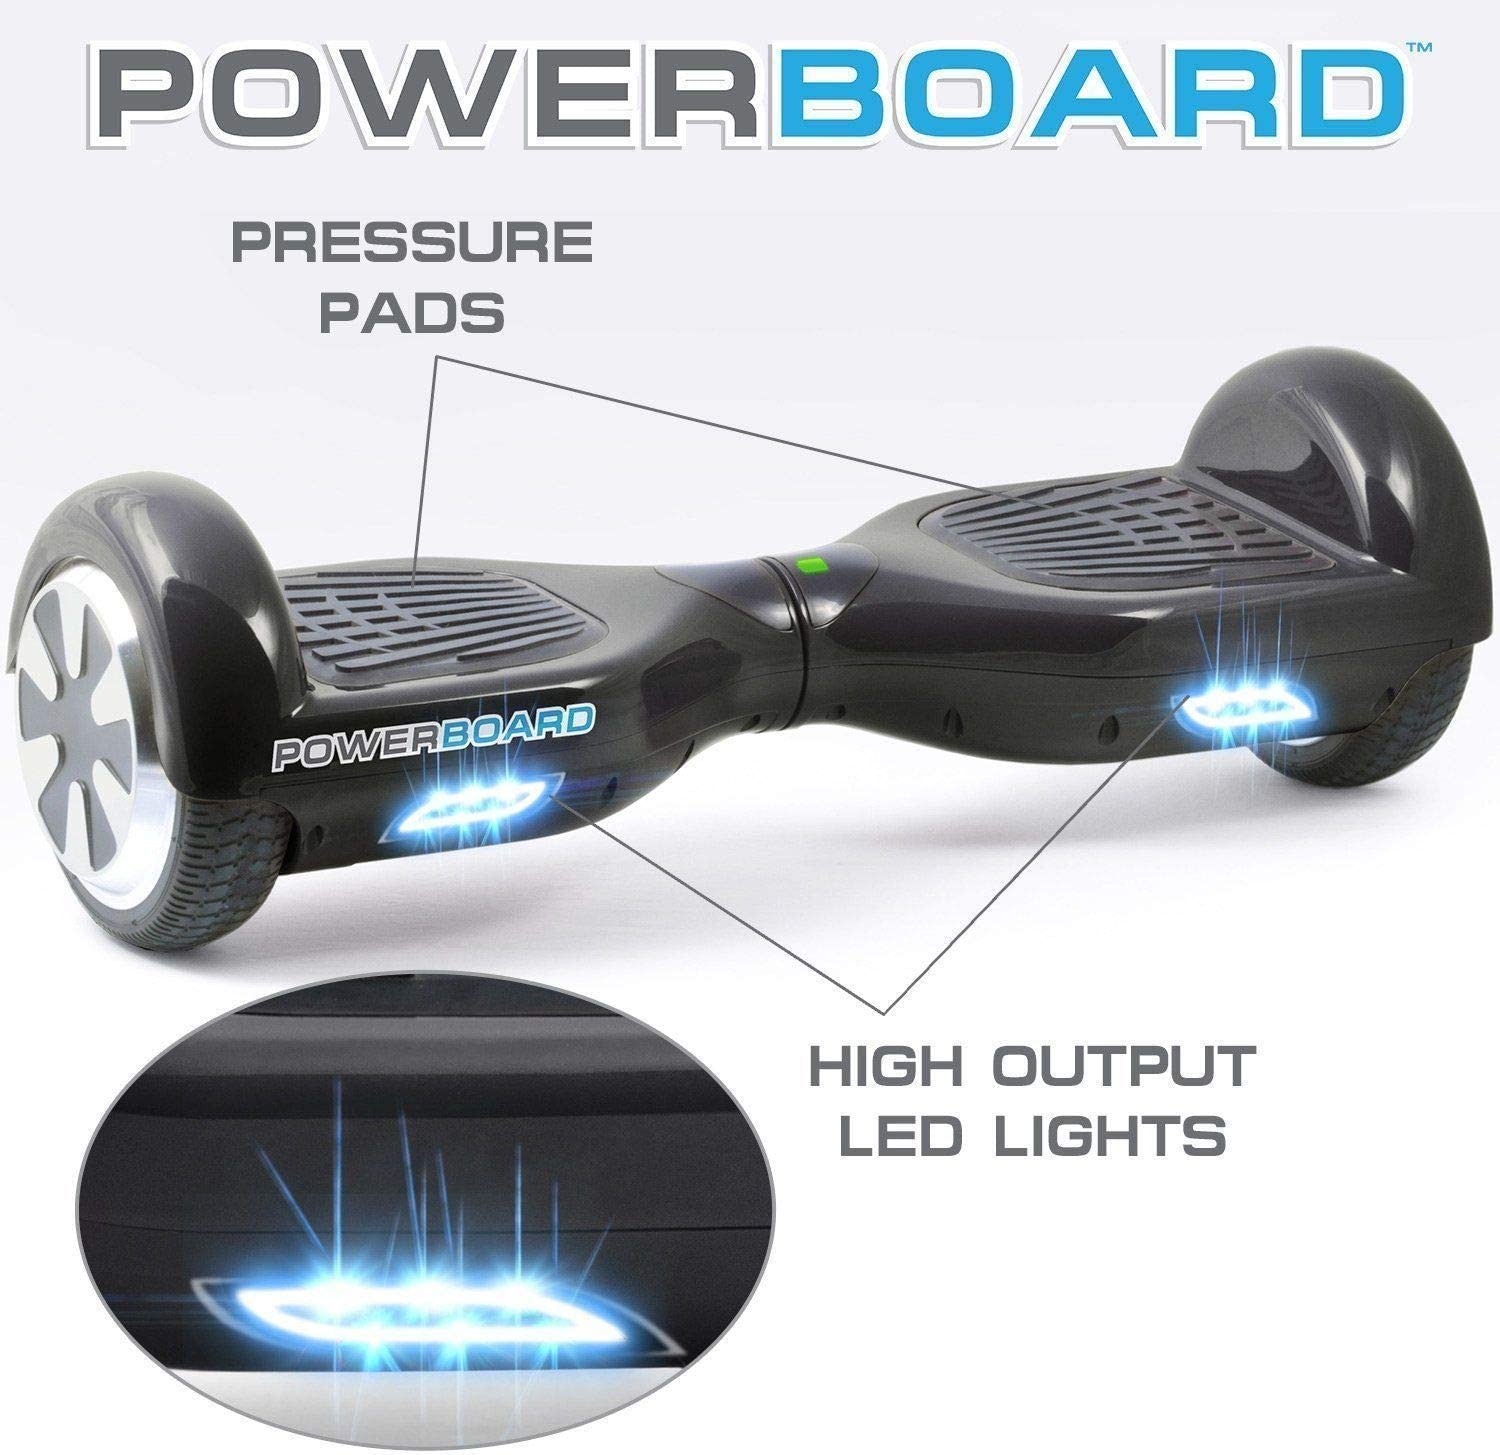 11 Best Hoverboard For Kids (2021 Reviews & Buying Guide) 8